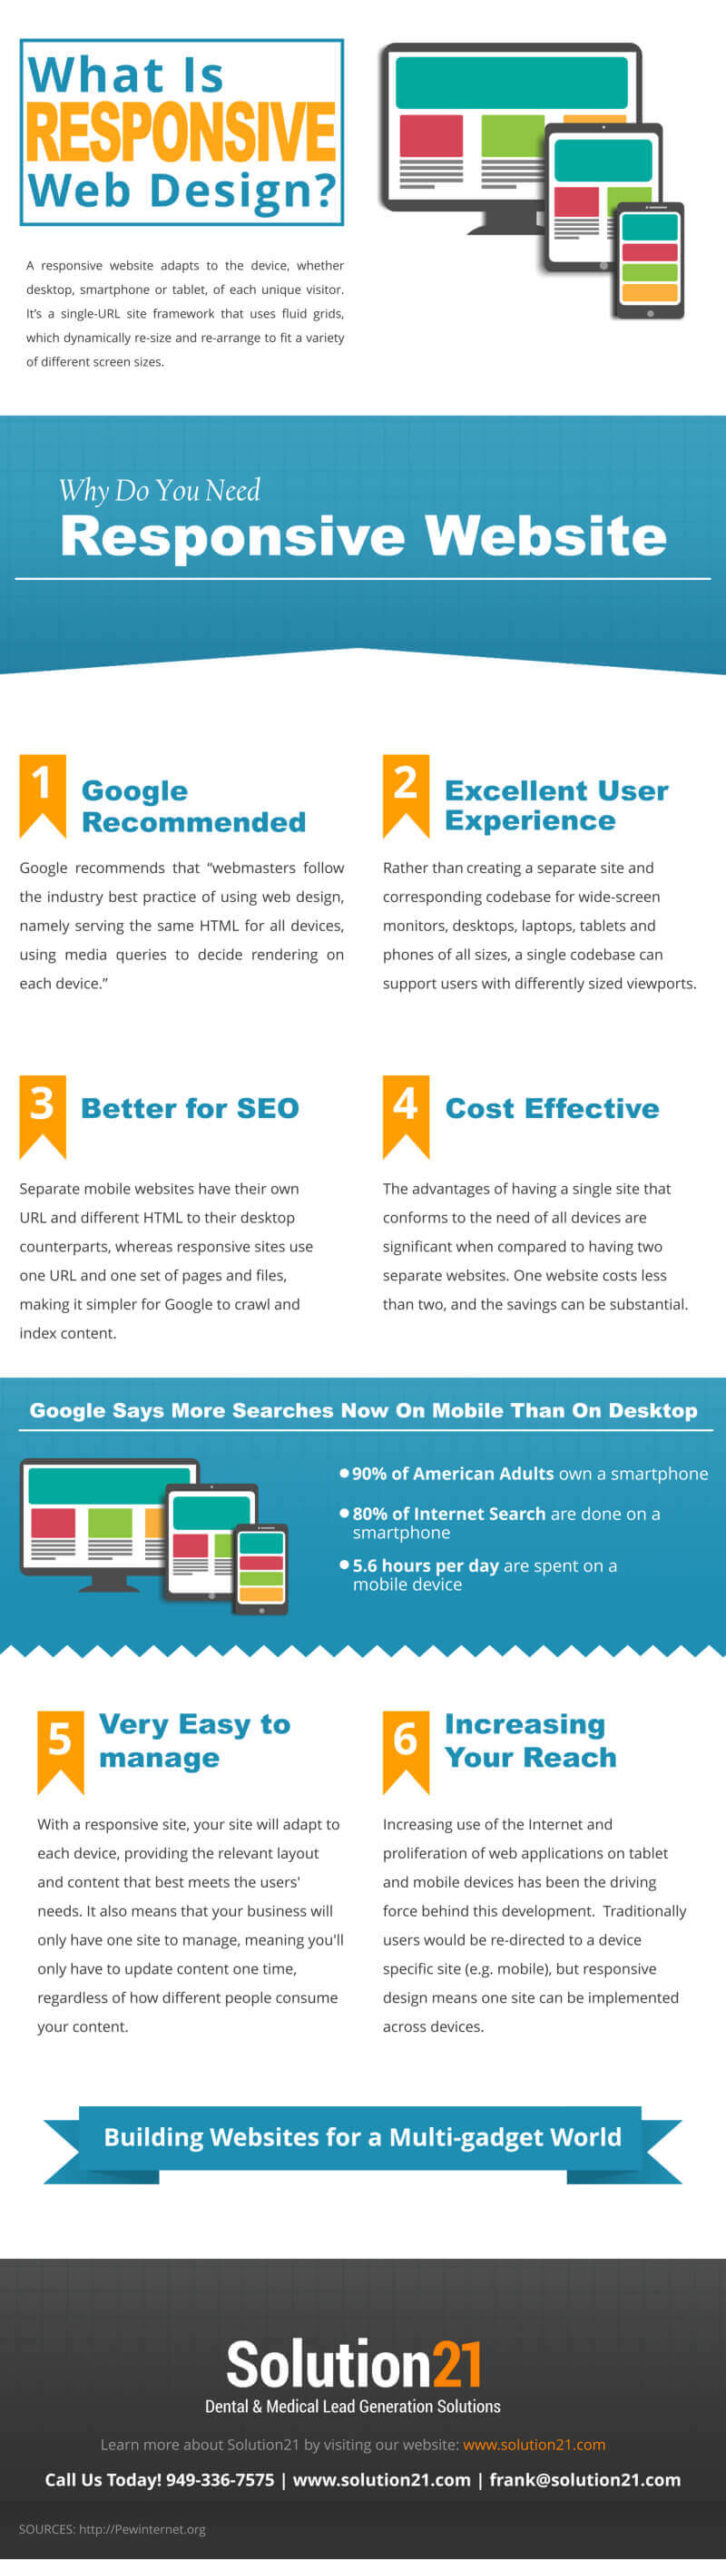 What is Responsive Web Design - Infographic